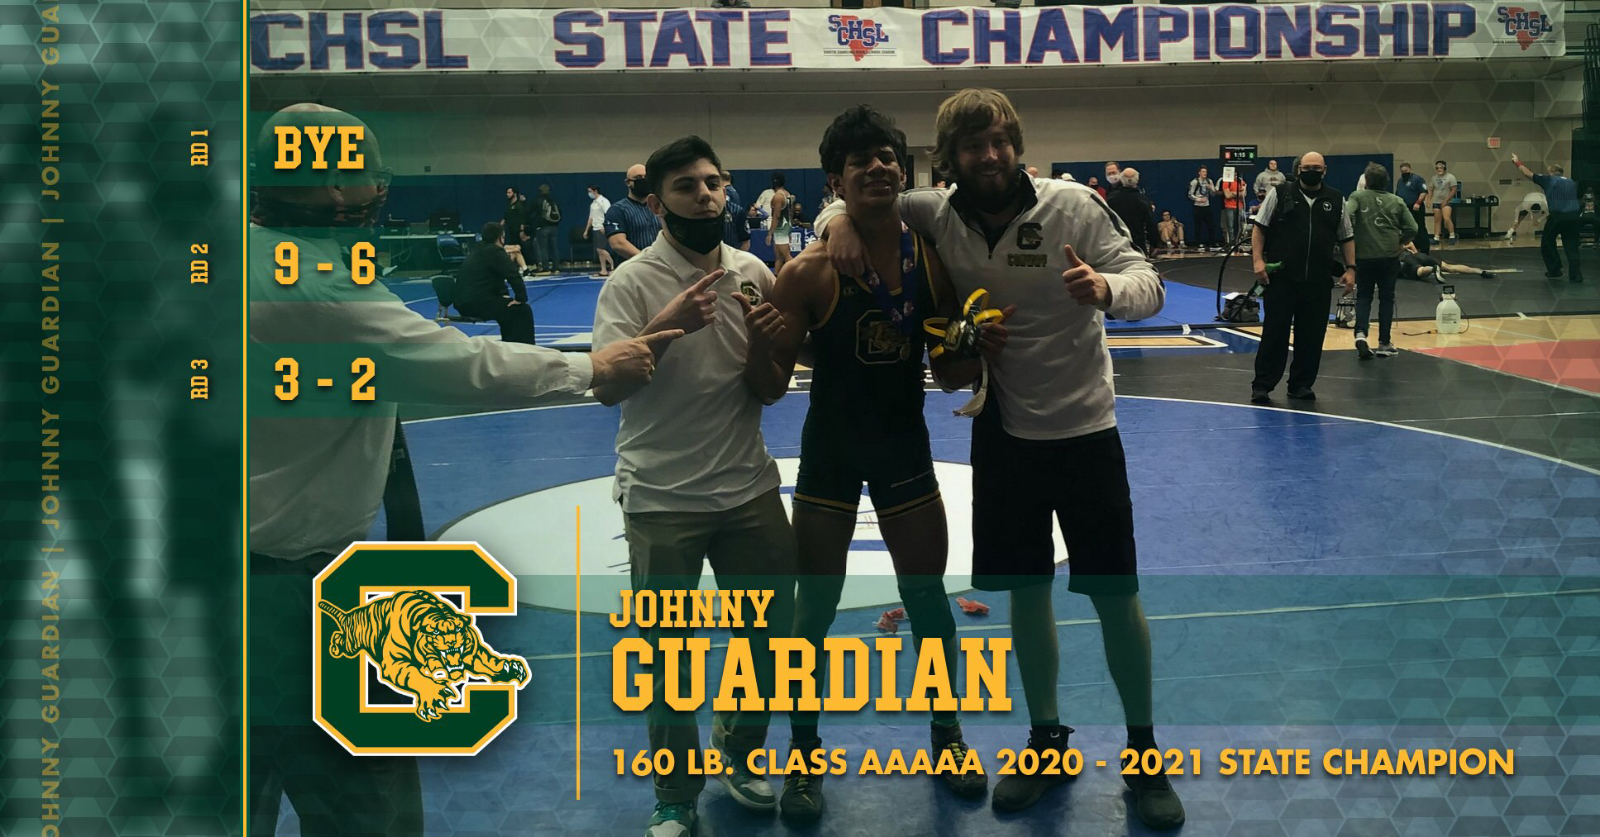 Congratulations Johnny Guardian! State Champion!